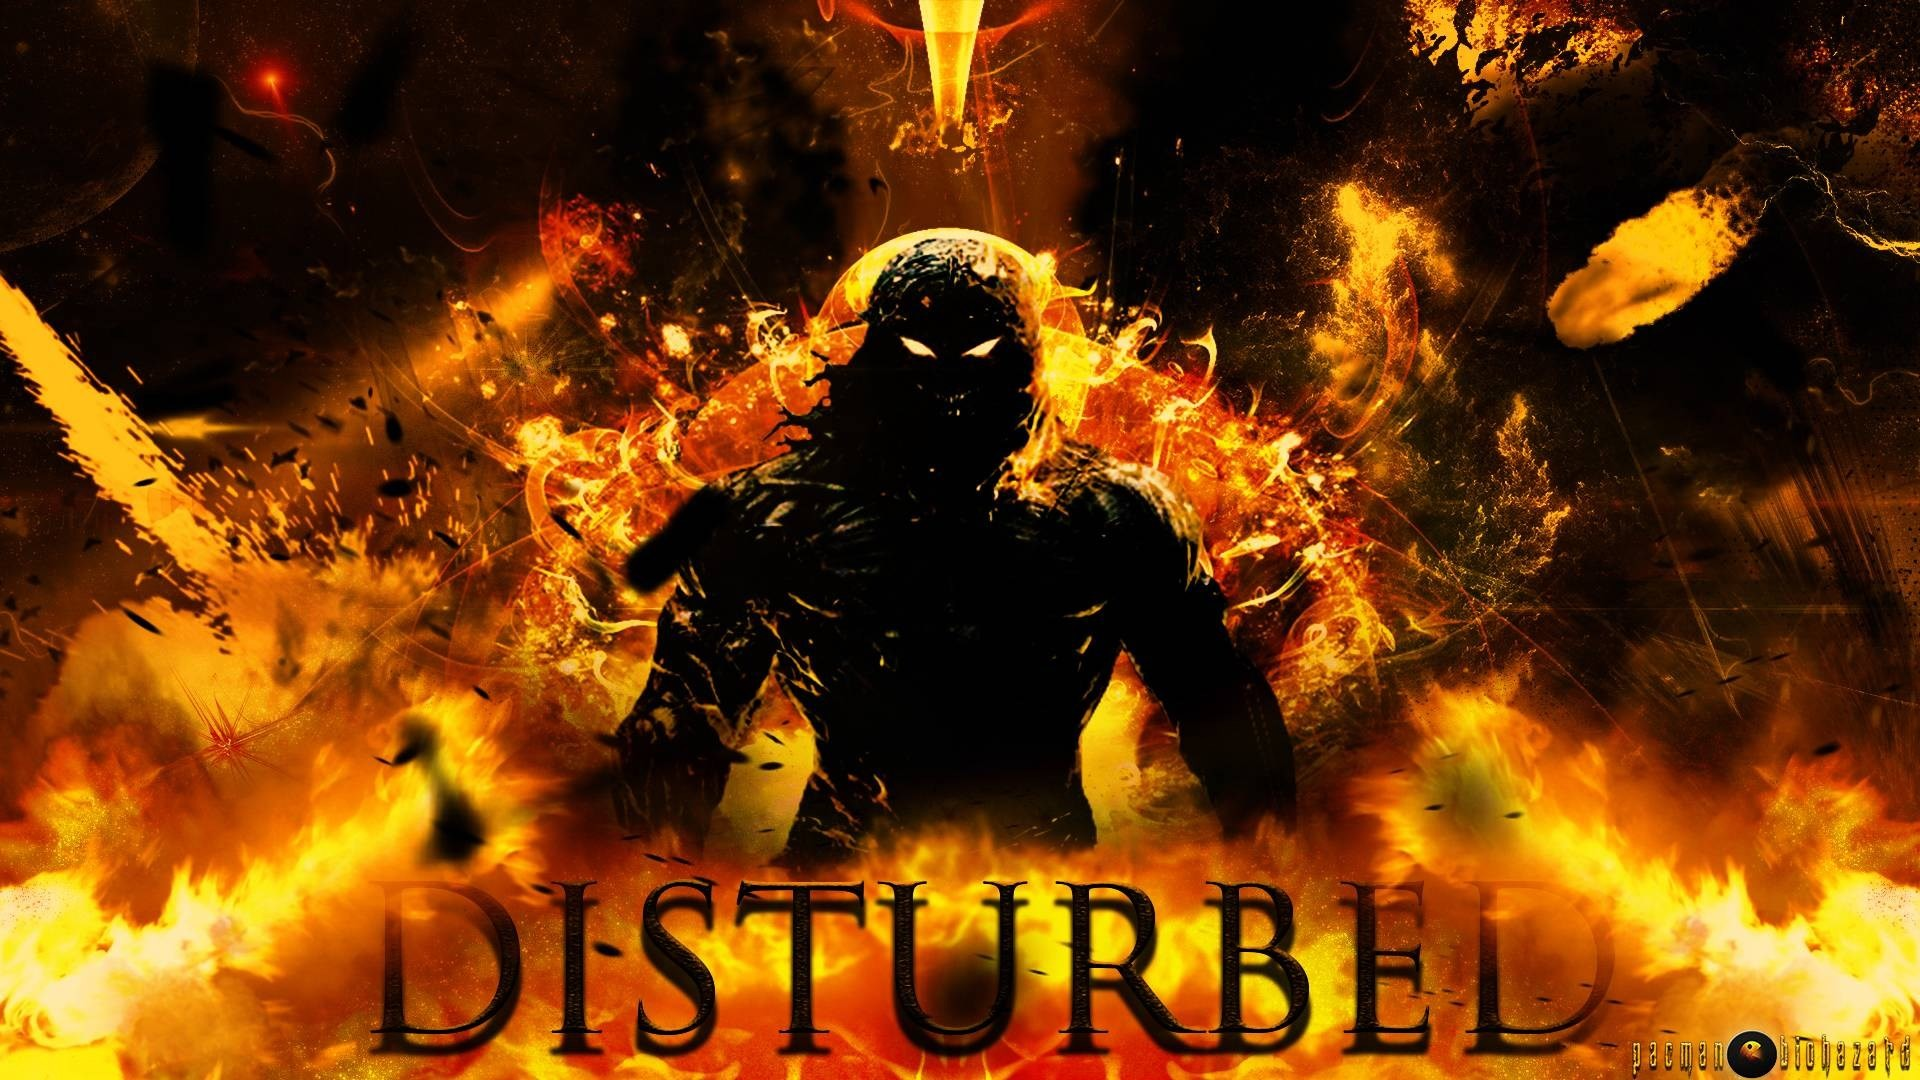 disturbed indestructible wallpaper disturbed indestructible wallpaper